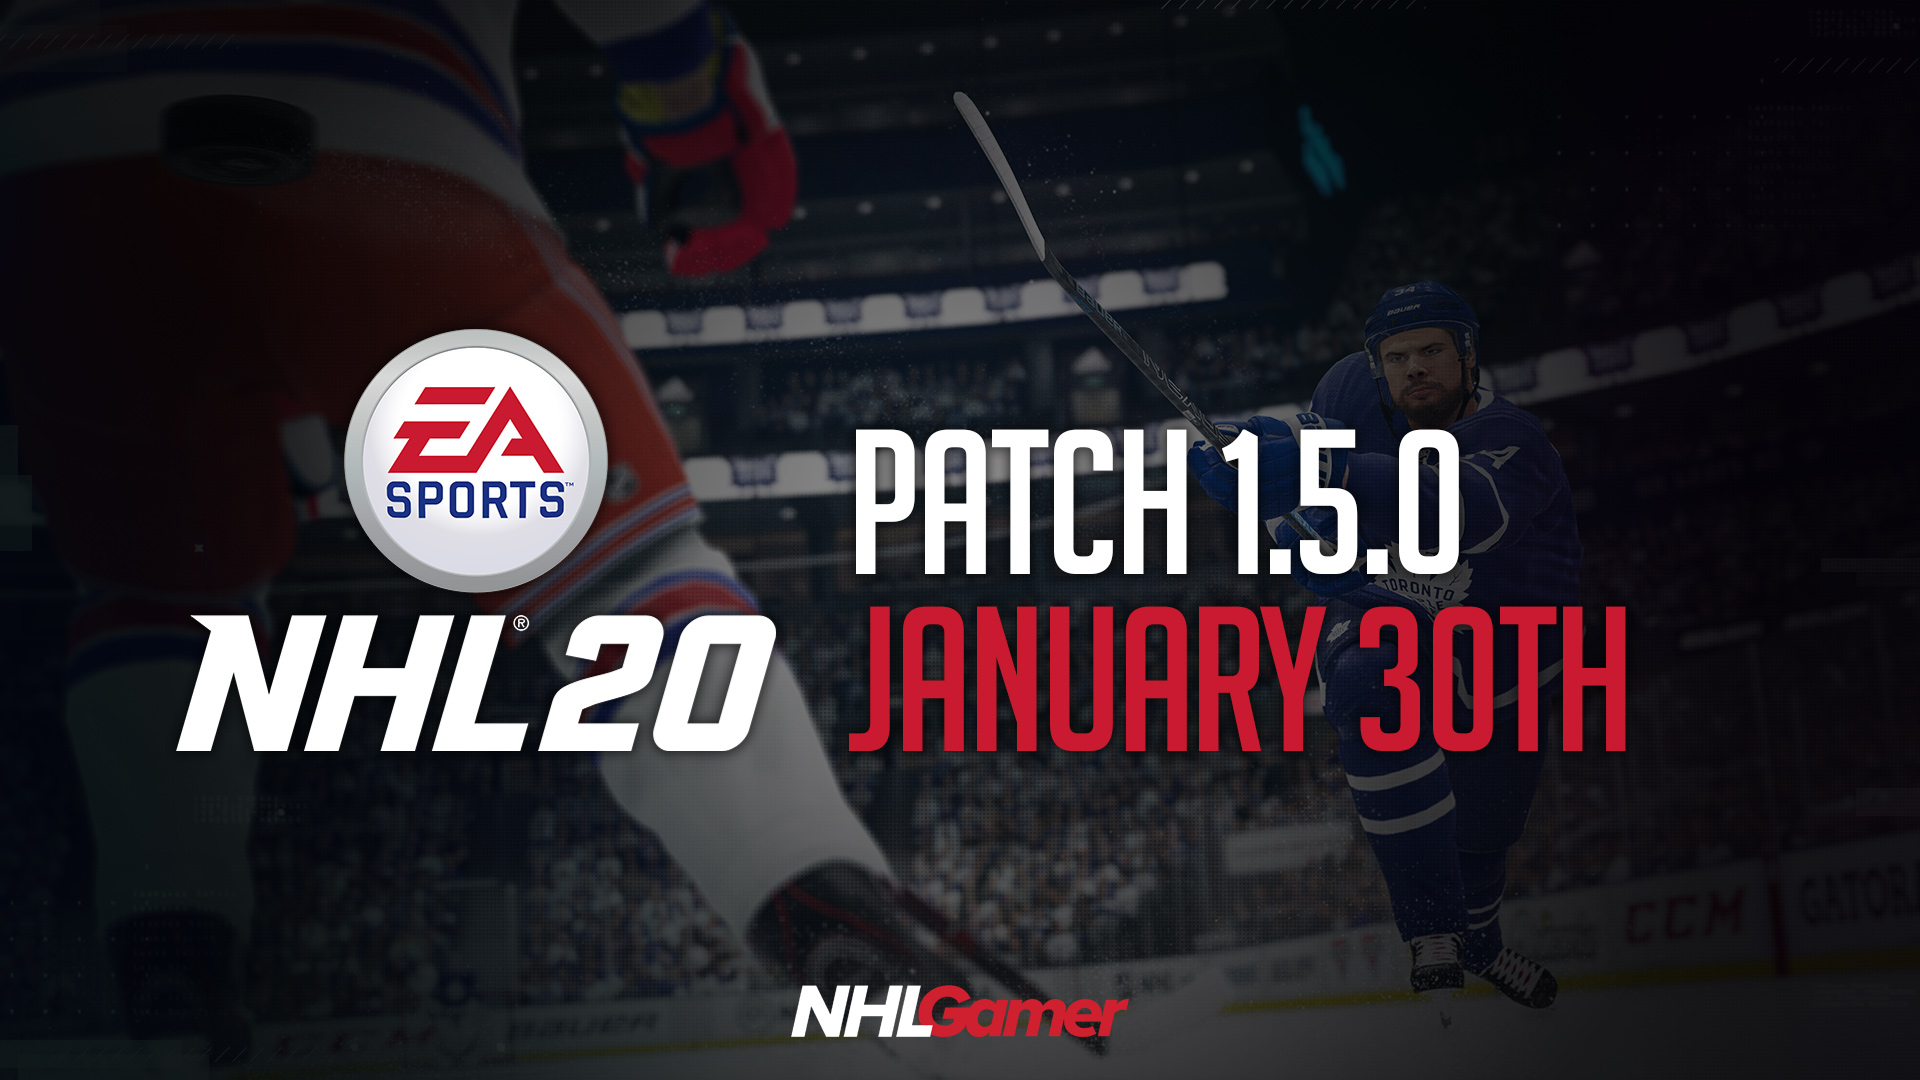 NHL20_Patch_Details_January_30th.jpg